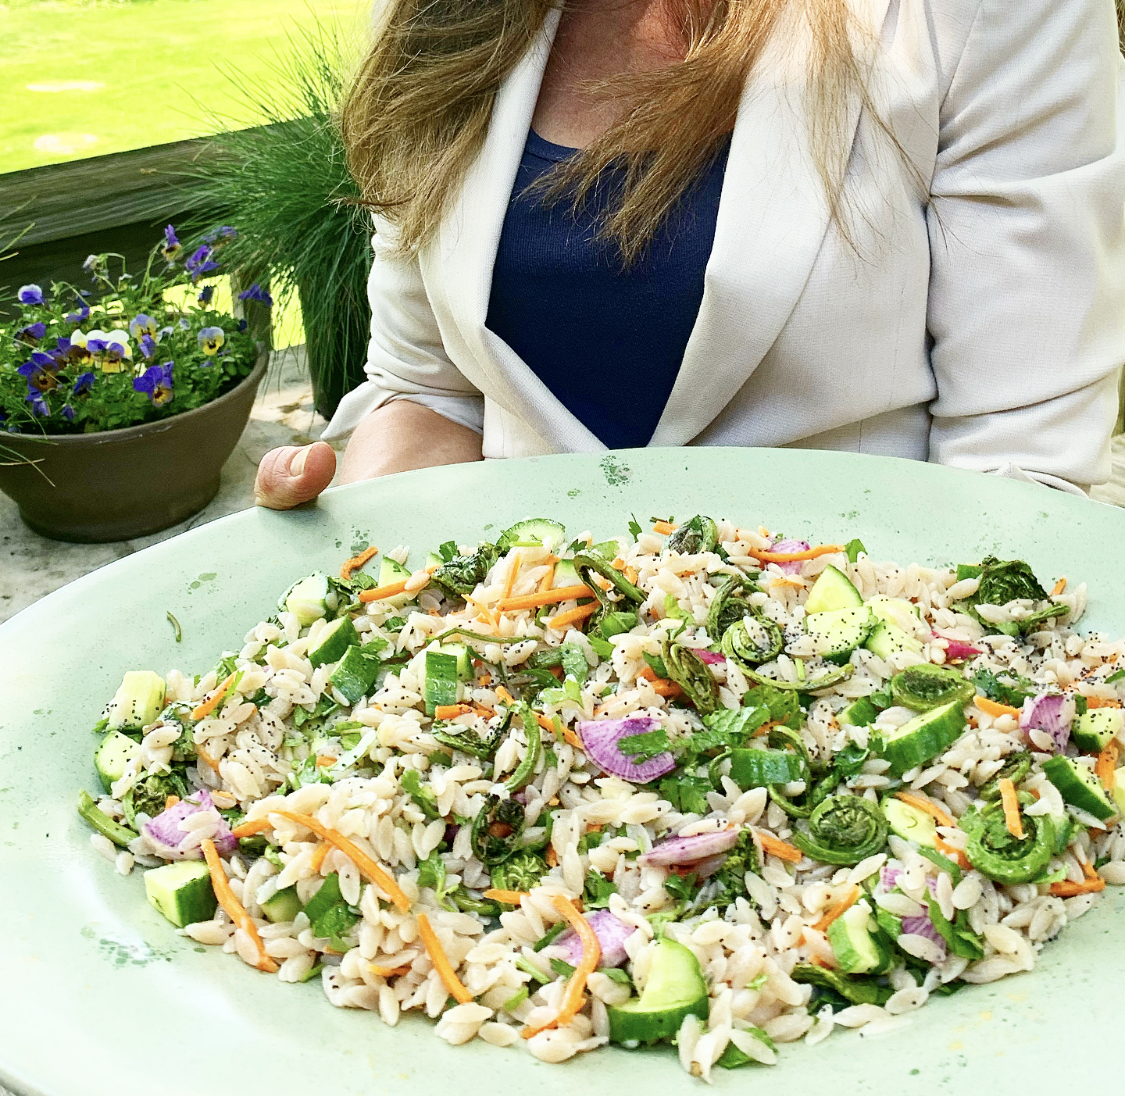 GRAIN-FREE ORZO SALAD WITH FIDDLEHEADS